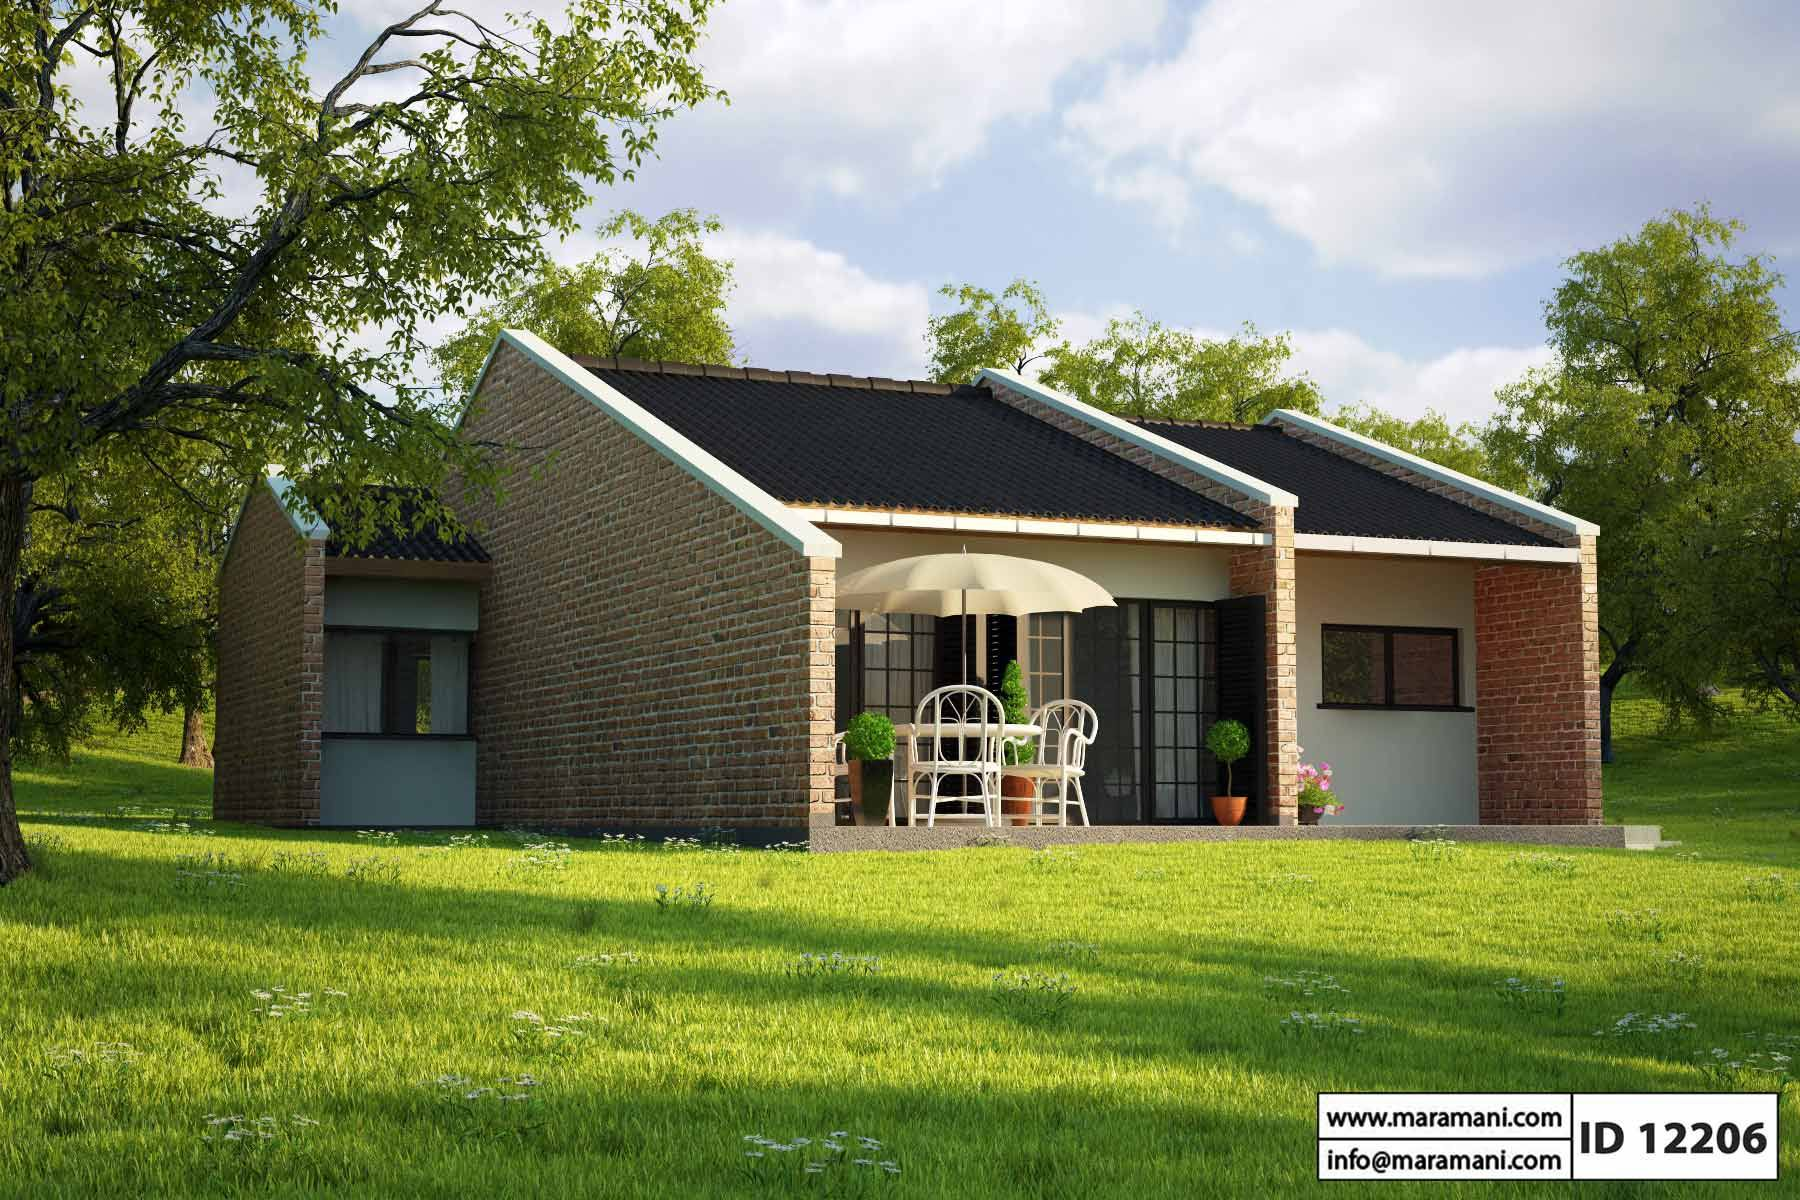 Extraordinary 10 small brick house plans inspiration of for Brick house design blog